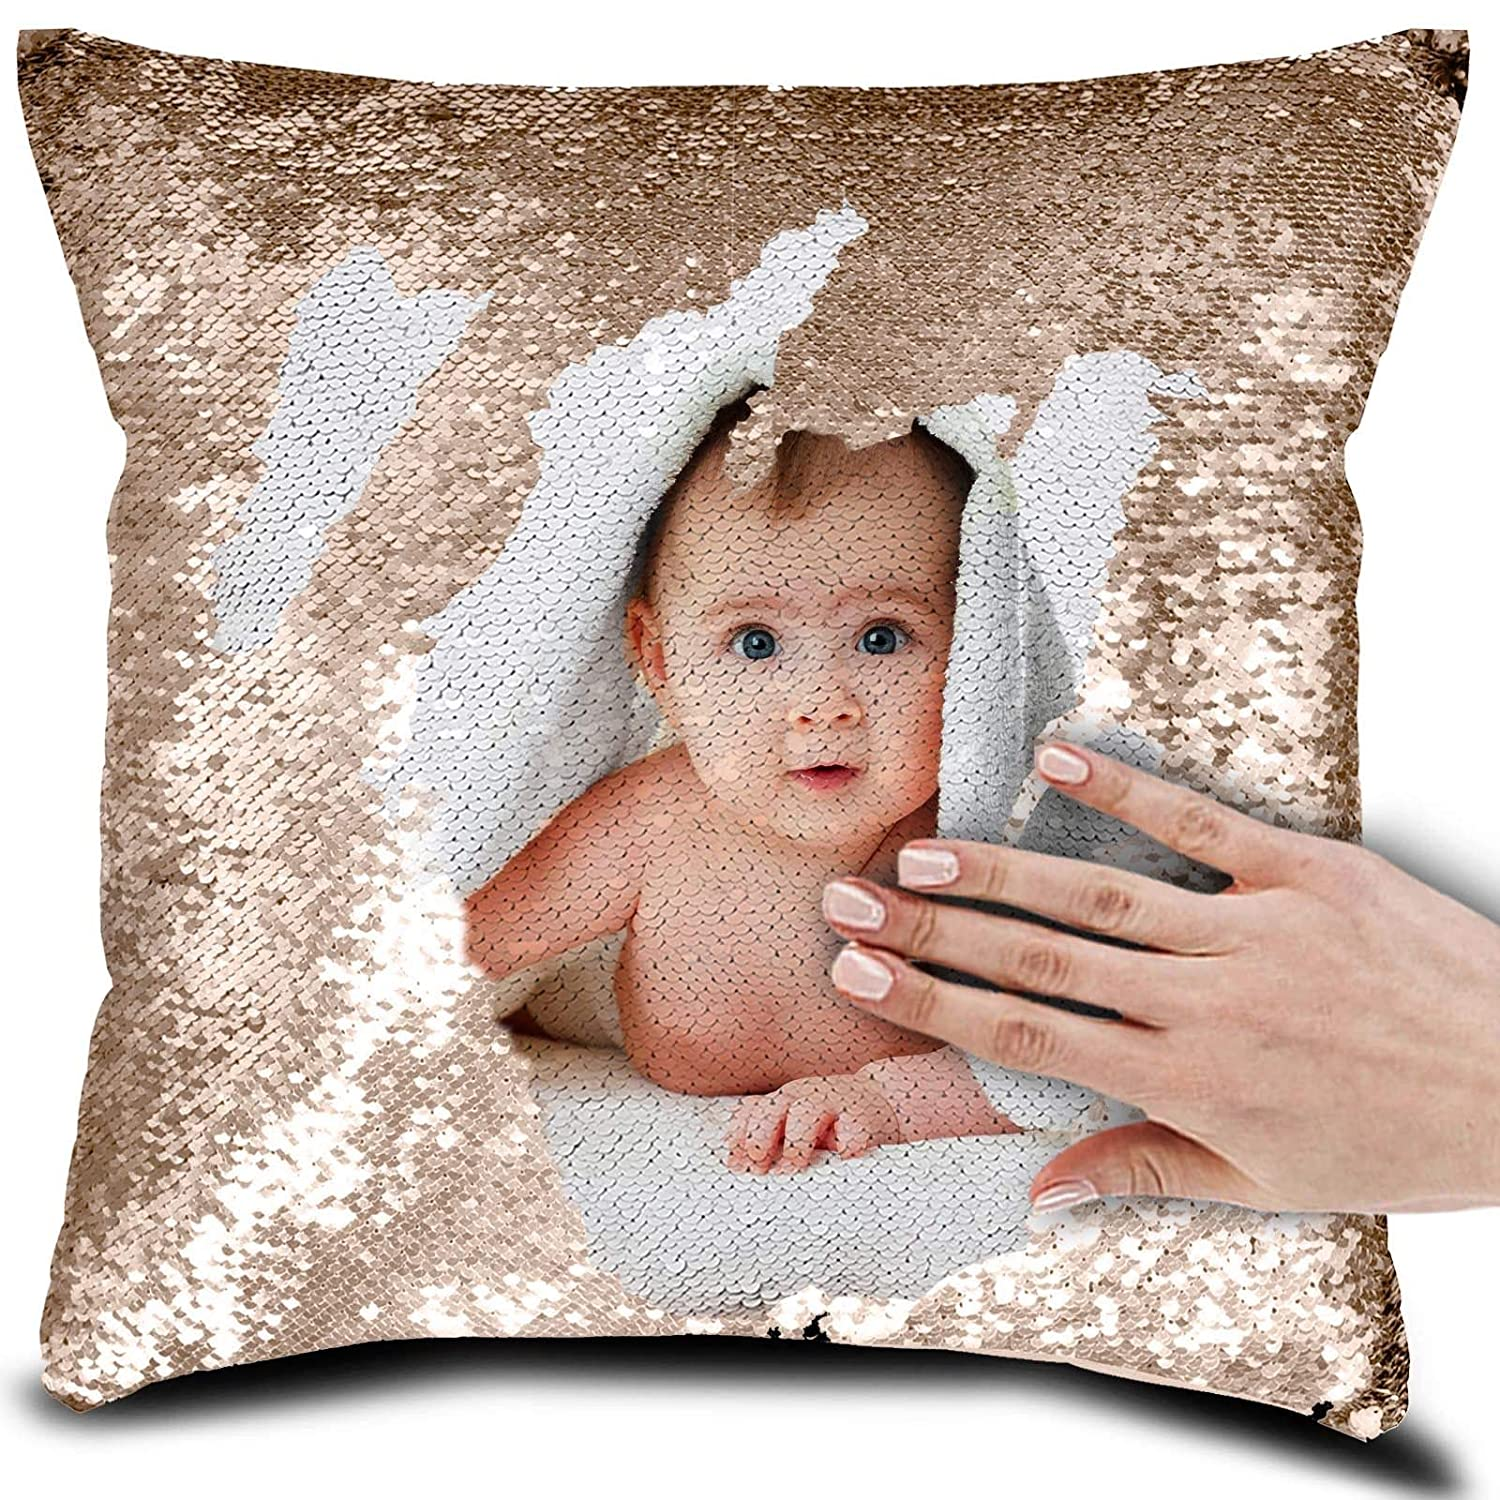 N4U Online Personalised Photo Your Name, Text Sequin Pillow Cushion Cover Magic Reveal Gift - With Insert - Black